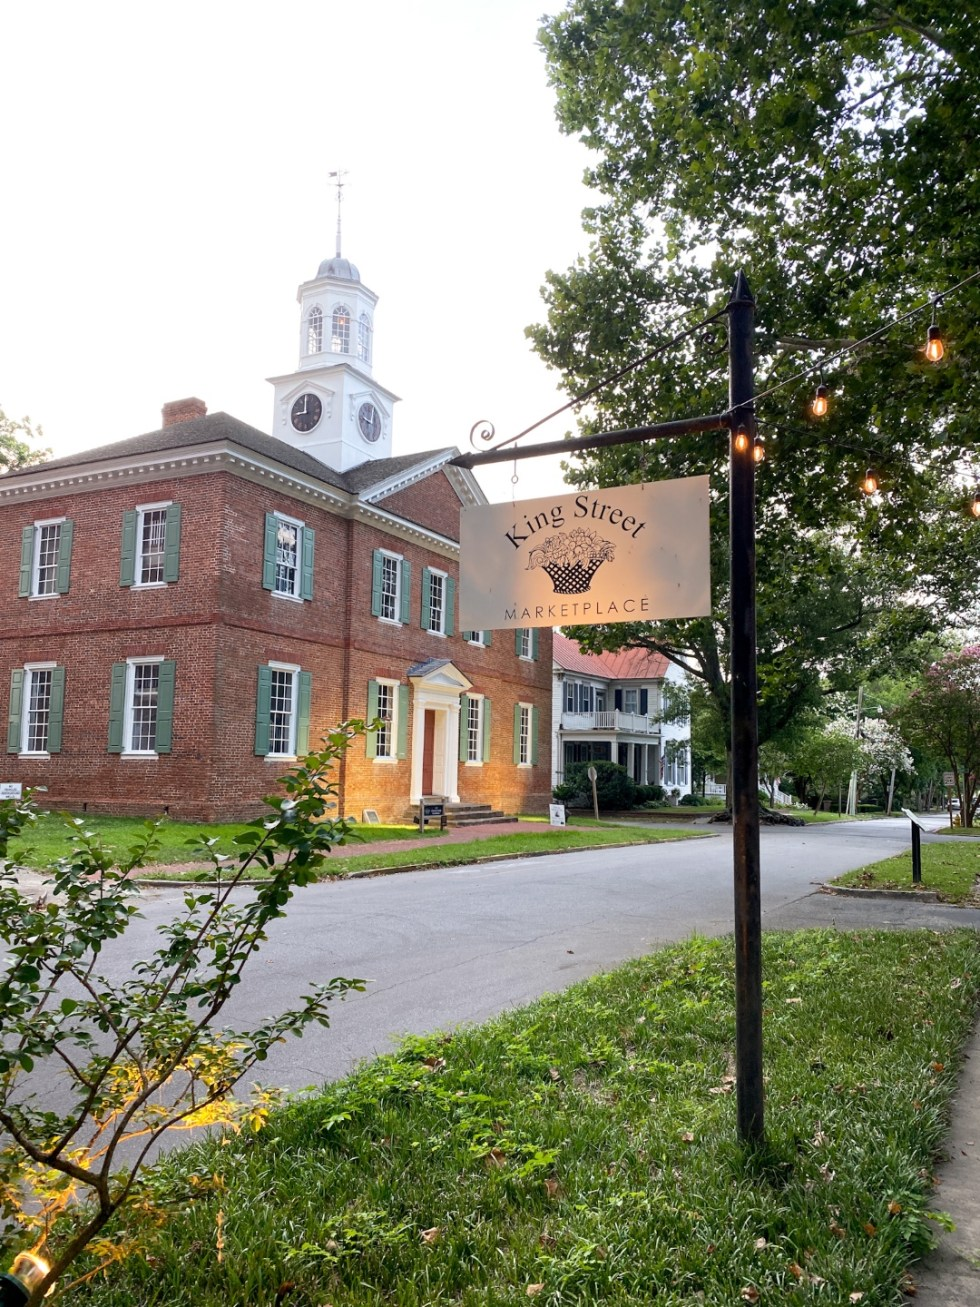 Top 10 Best Things to Do in Edenton, NC: A Complete Travel Guide - I'm Fixin' To - @imfixintoblog | Edenton Travel Guide by popular NC travel guid, I'm Fixin' To: image of a colonial brick building on King Street.